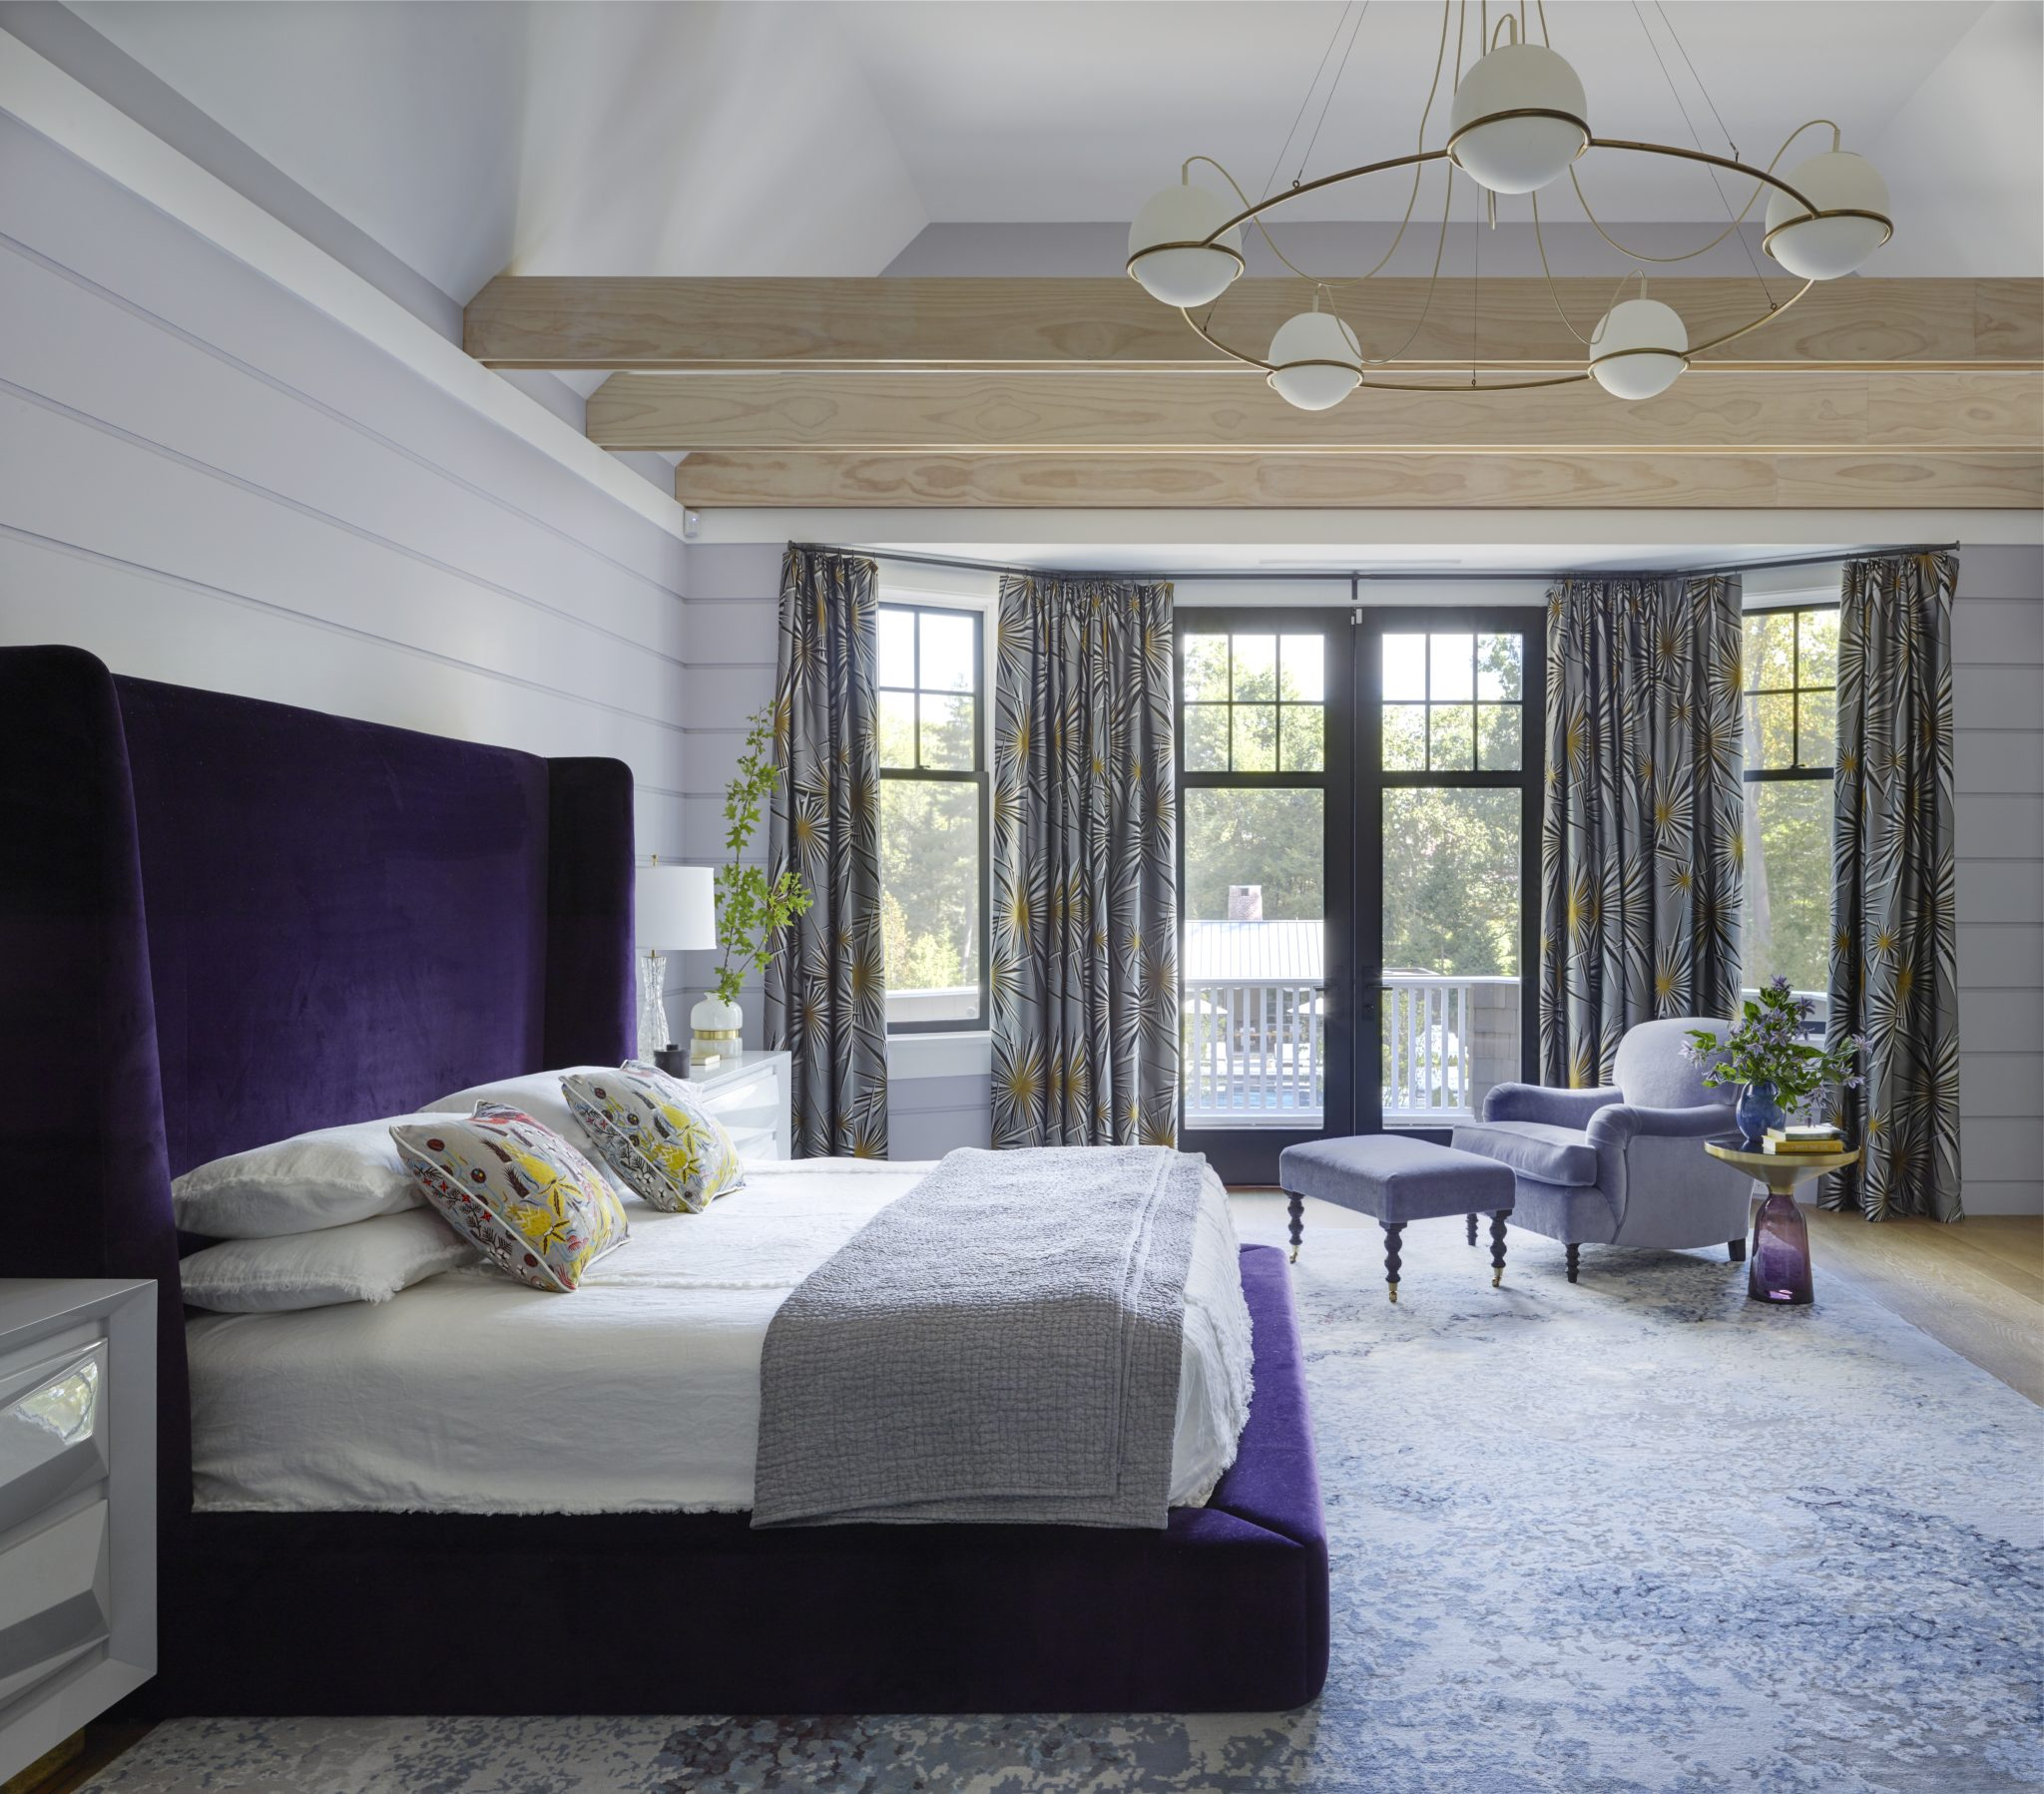 Architectural New Jersey Home, Master Bedroom by Fawn Galli Interiors